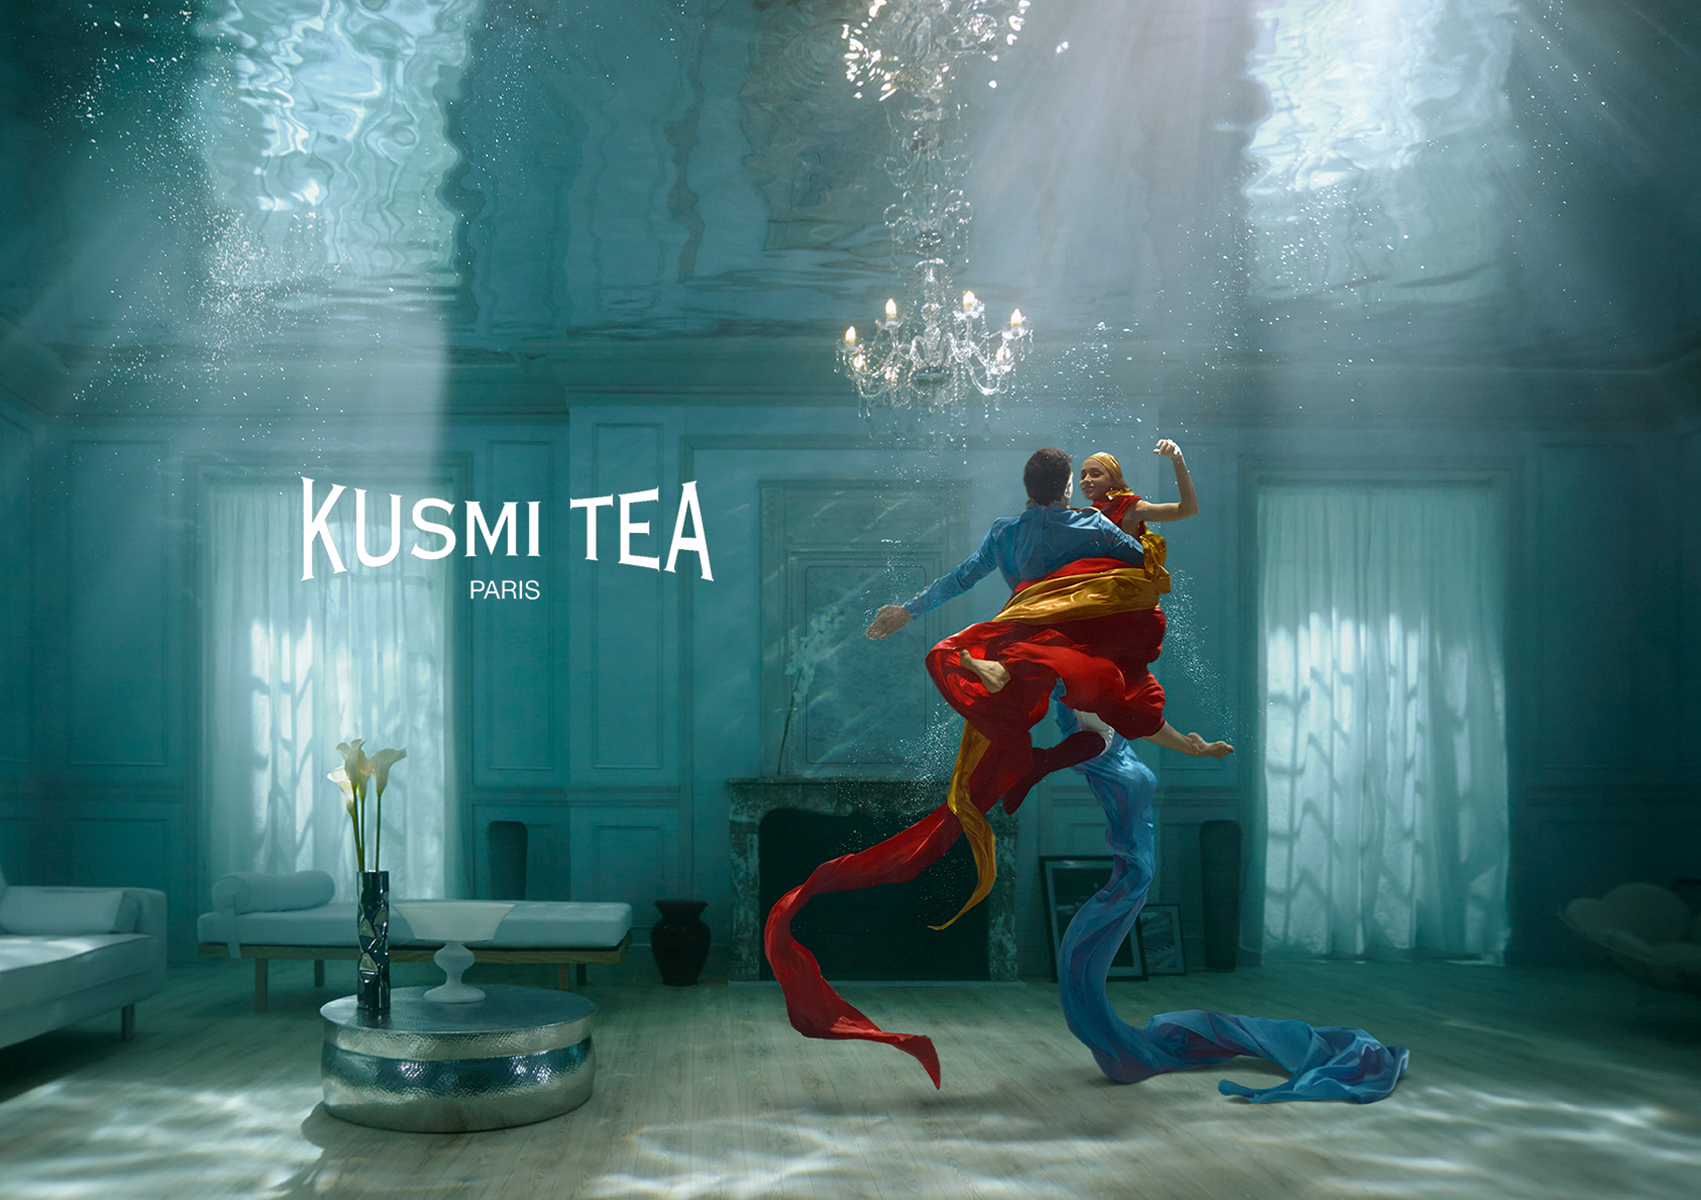 Kusmi_Tea_Prince_Wladimir_Underwater_Advertising.jpg